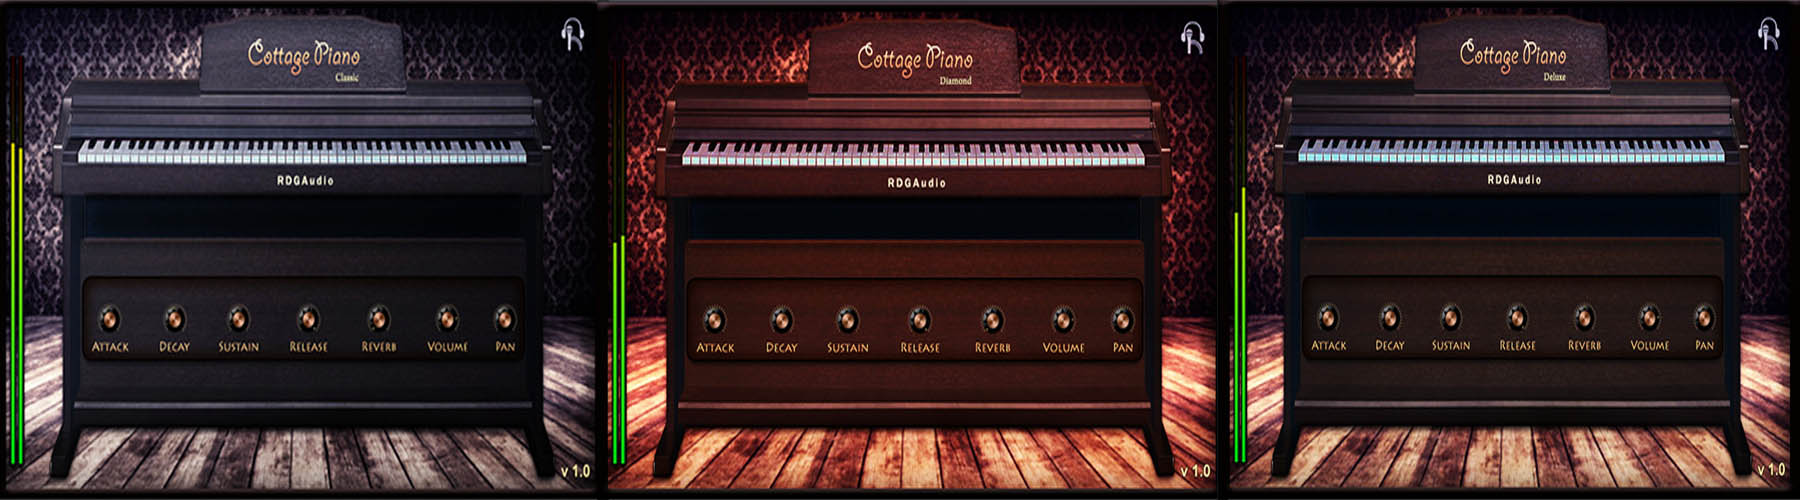 Cottage Piano RDGAudio 3 types models